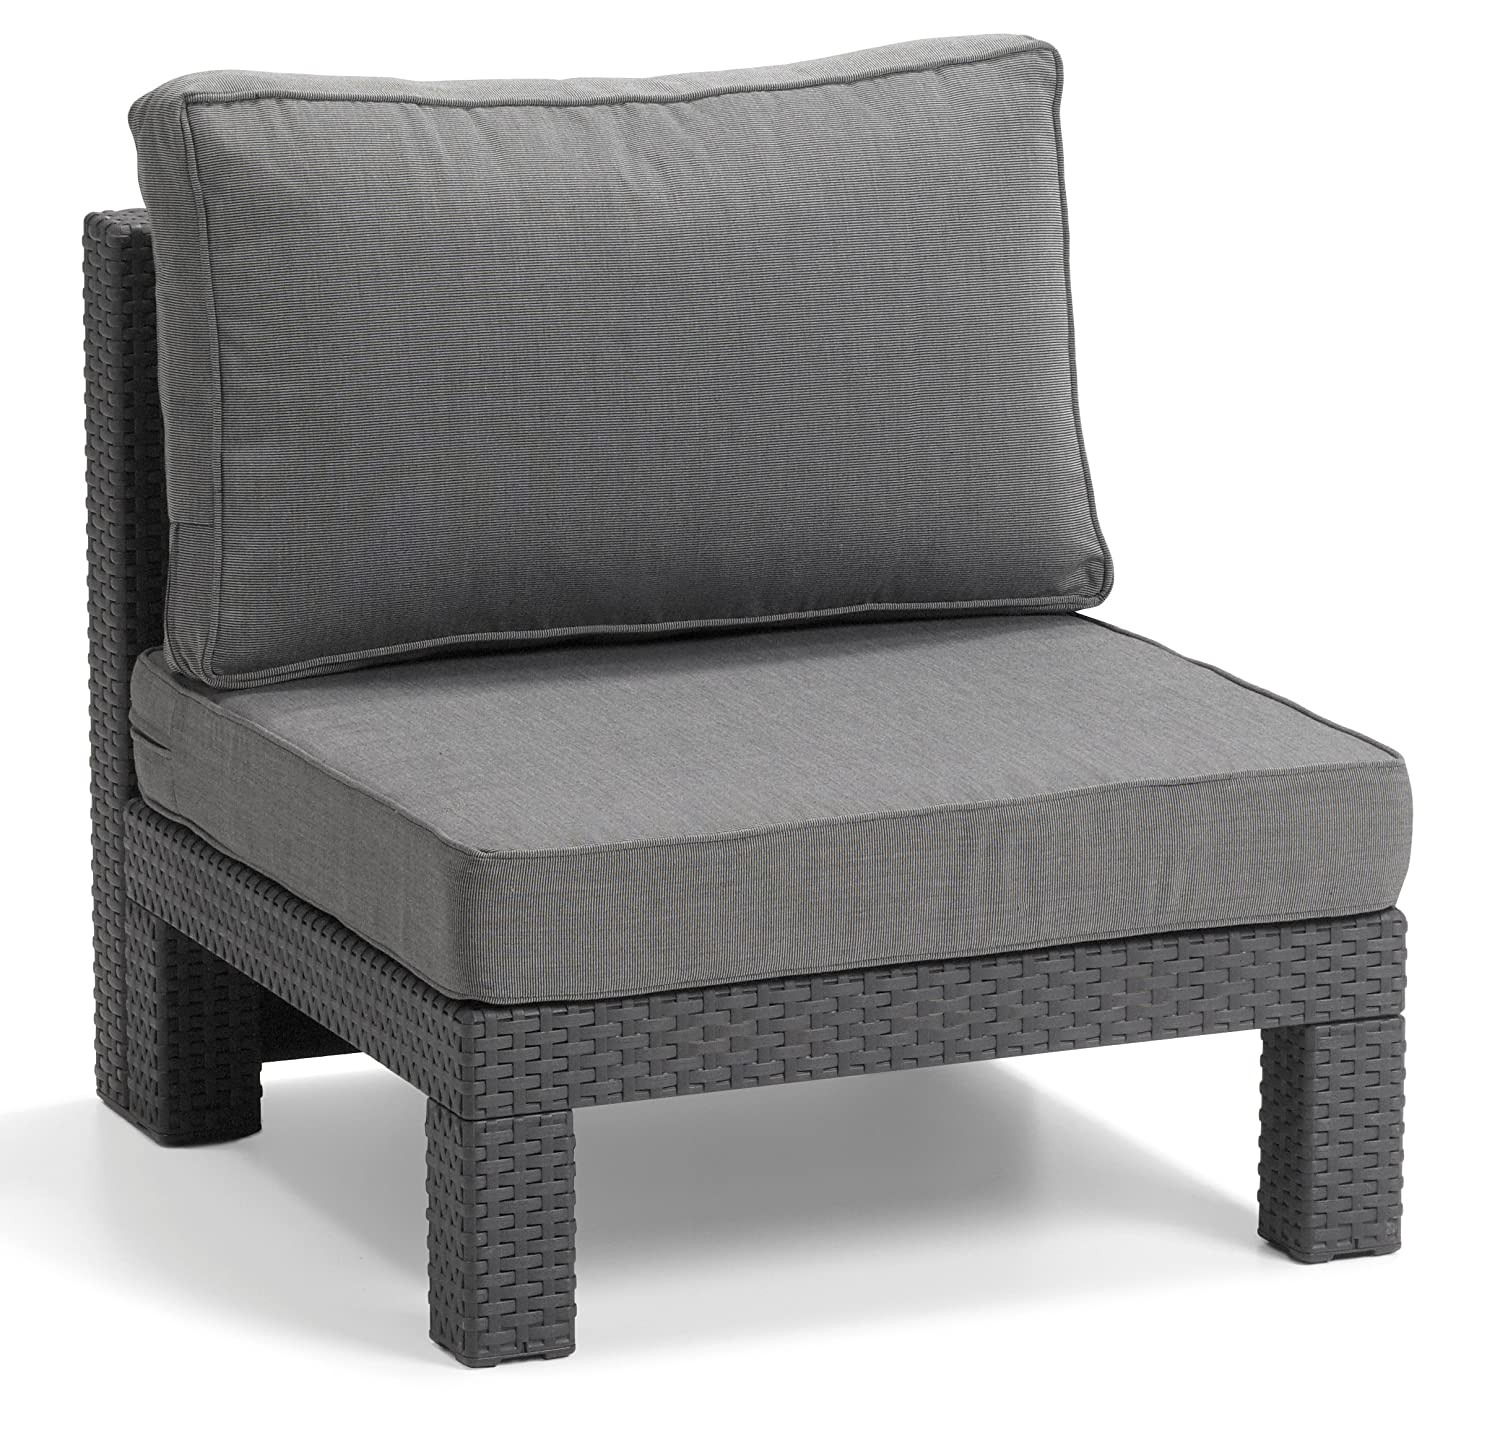 ALLIBERT Ensemble Lounge Nevada, gris, 5 pièces: Amazon.fr: Jardin